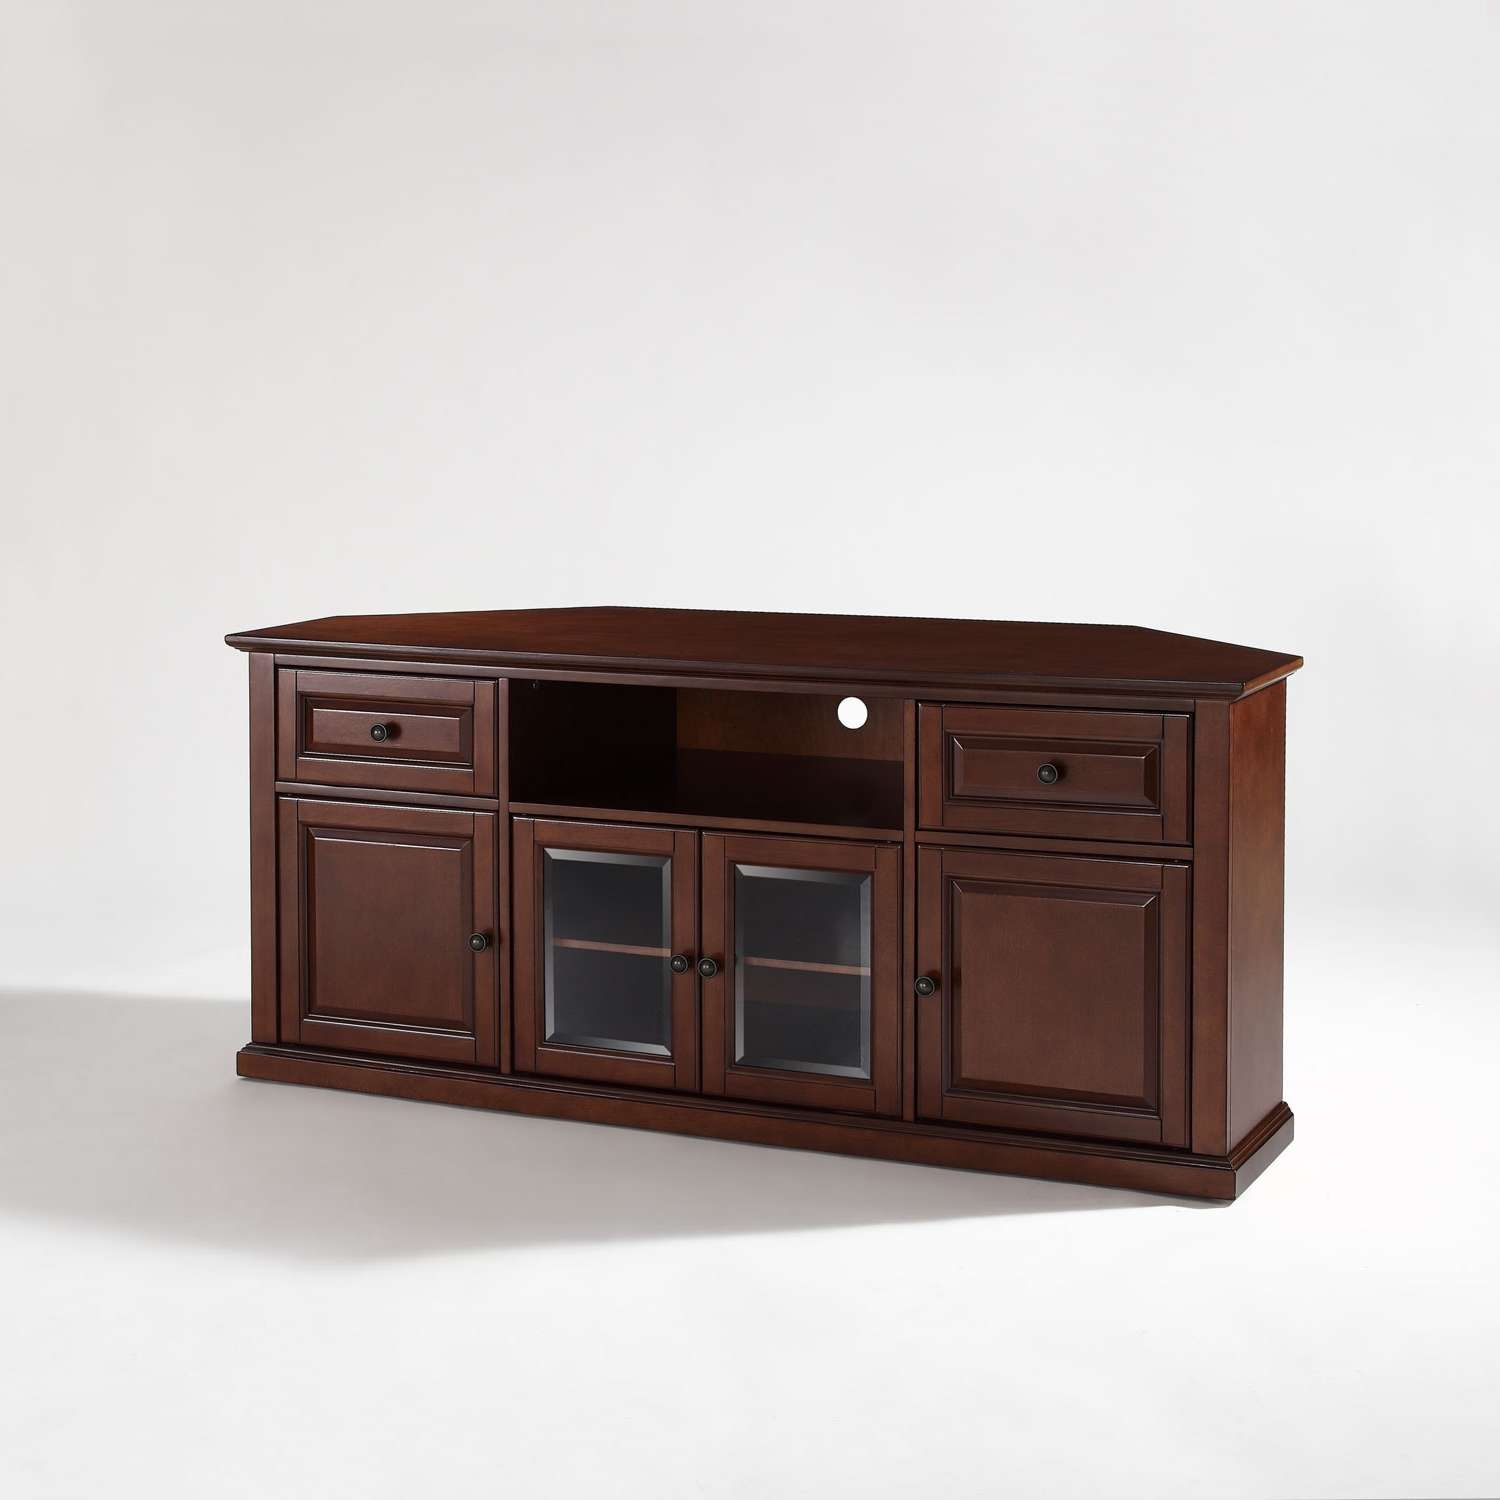 60 Inch Corner Tv Stand In Vintage Mahogany Crosley Furniture In Cornet Tv Stands (View 4 of 15)